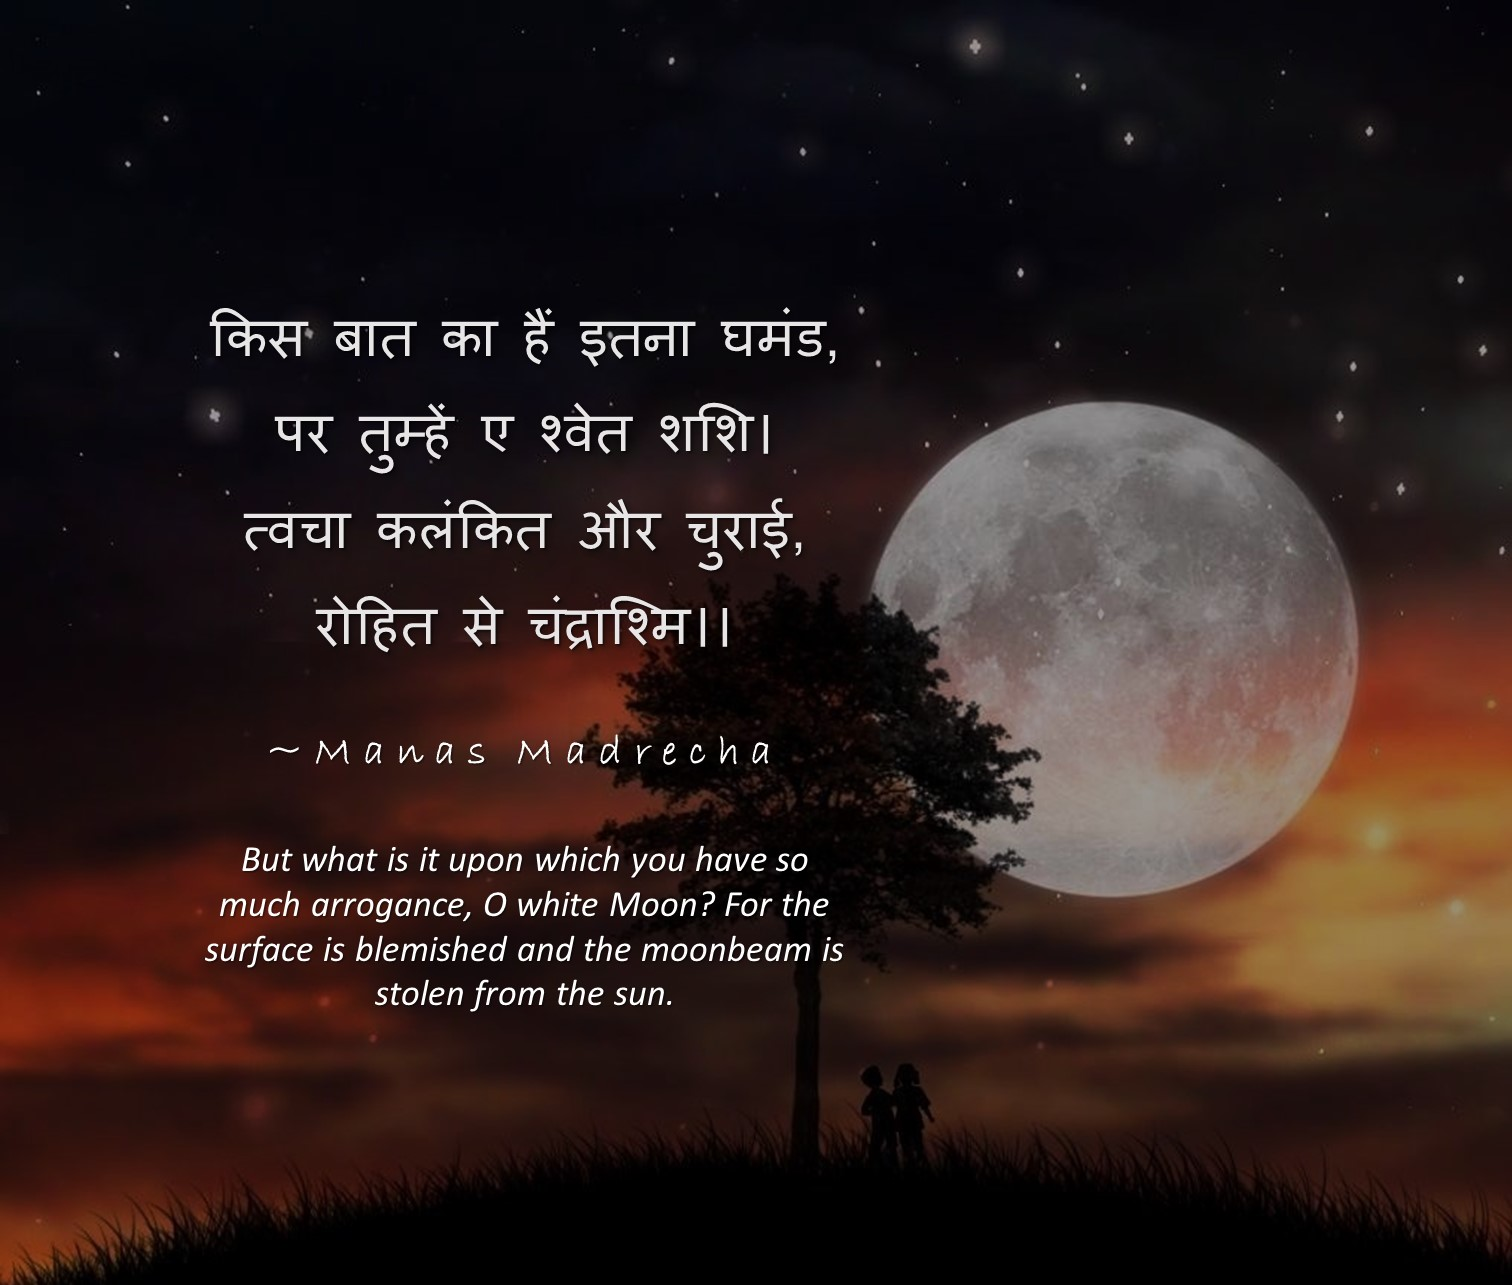 Hindi poem on moon, poem on moon, moon quotes, moon sky, moon in night sky, moon and sun, moonrise sunset, star sky, moon love, full moon in night, Manas Madrecha, Manas Madrecha poems, Manas Madrecha quotes, Manas Madrecha stories, Manas Madrecha blog, simplifying universe, moon in the sky with stars, tree in night, big moon, orange night sky